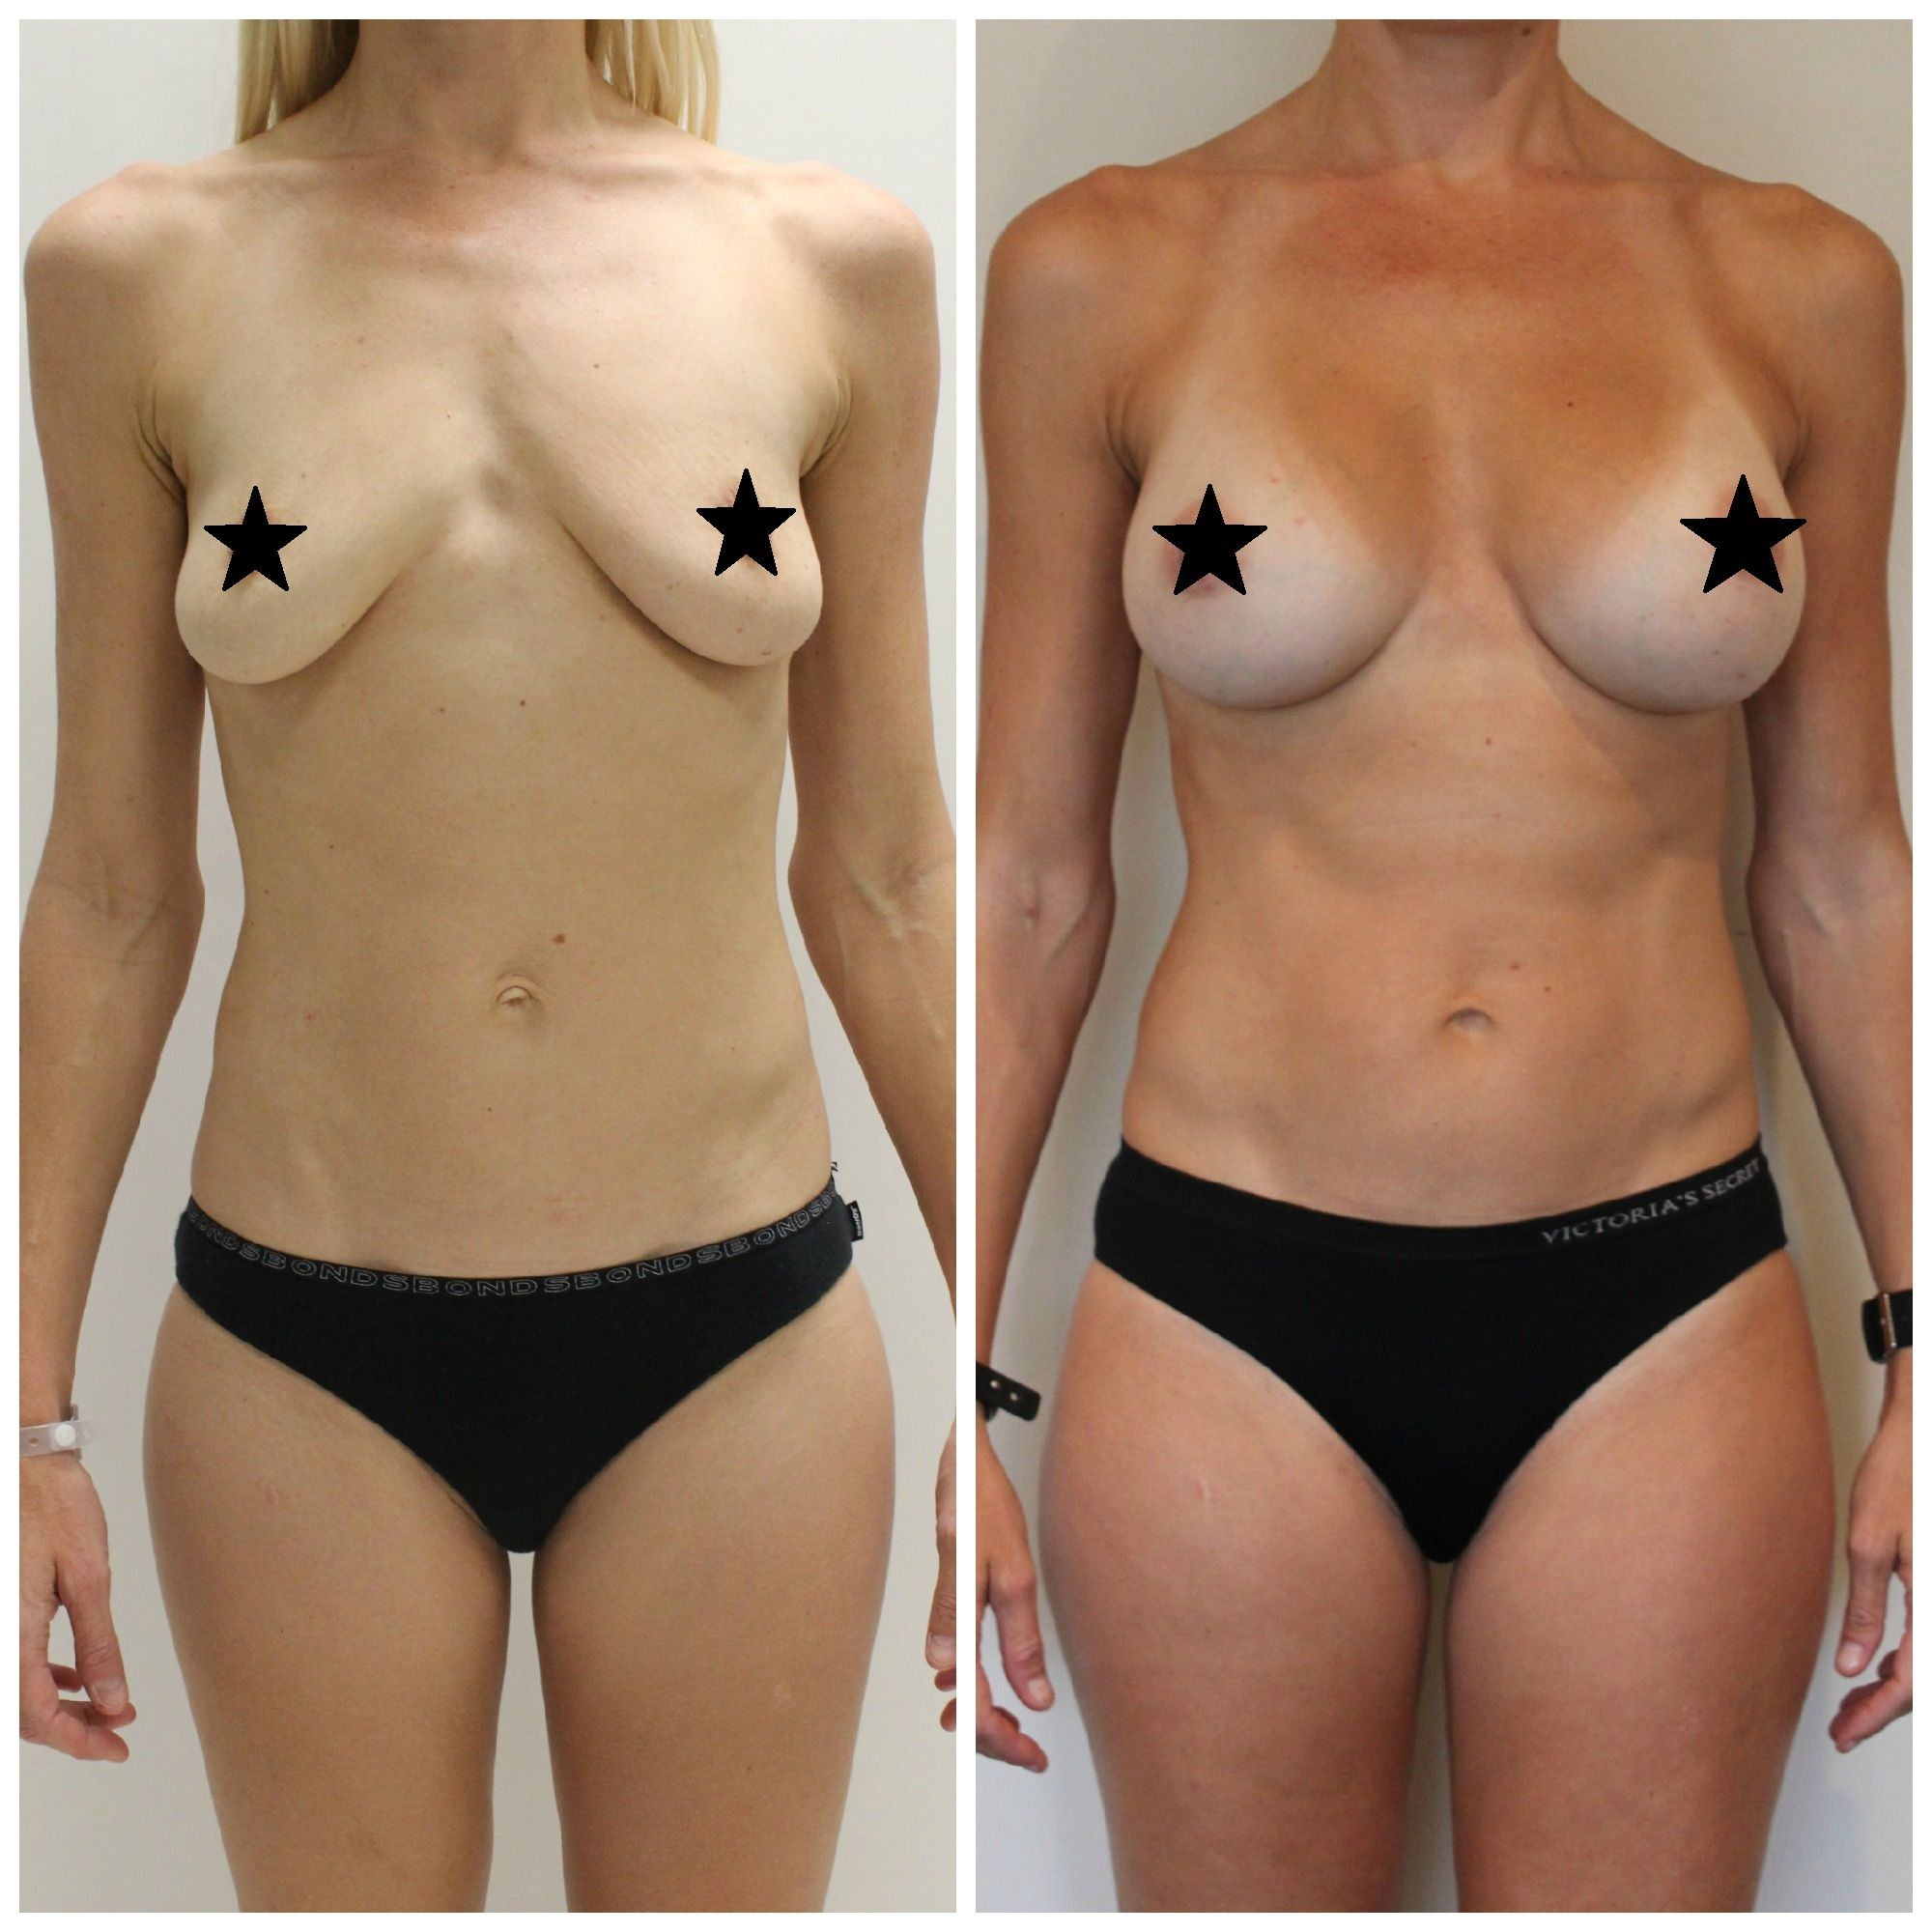 Breast augmentation a cup to c cup